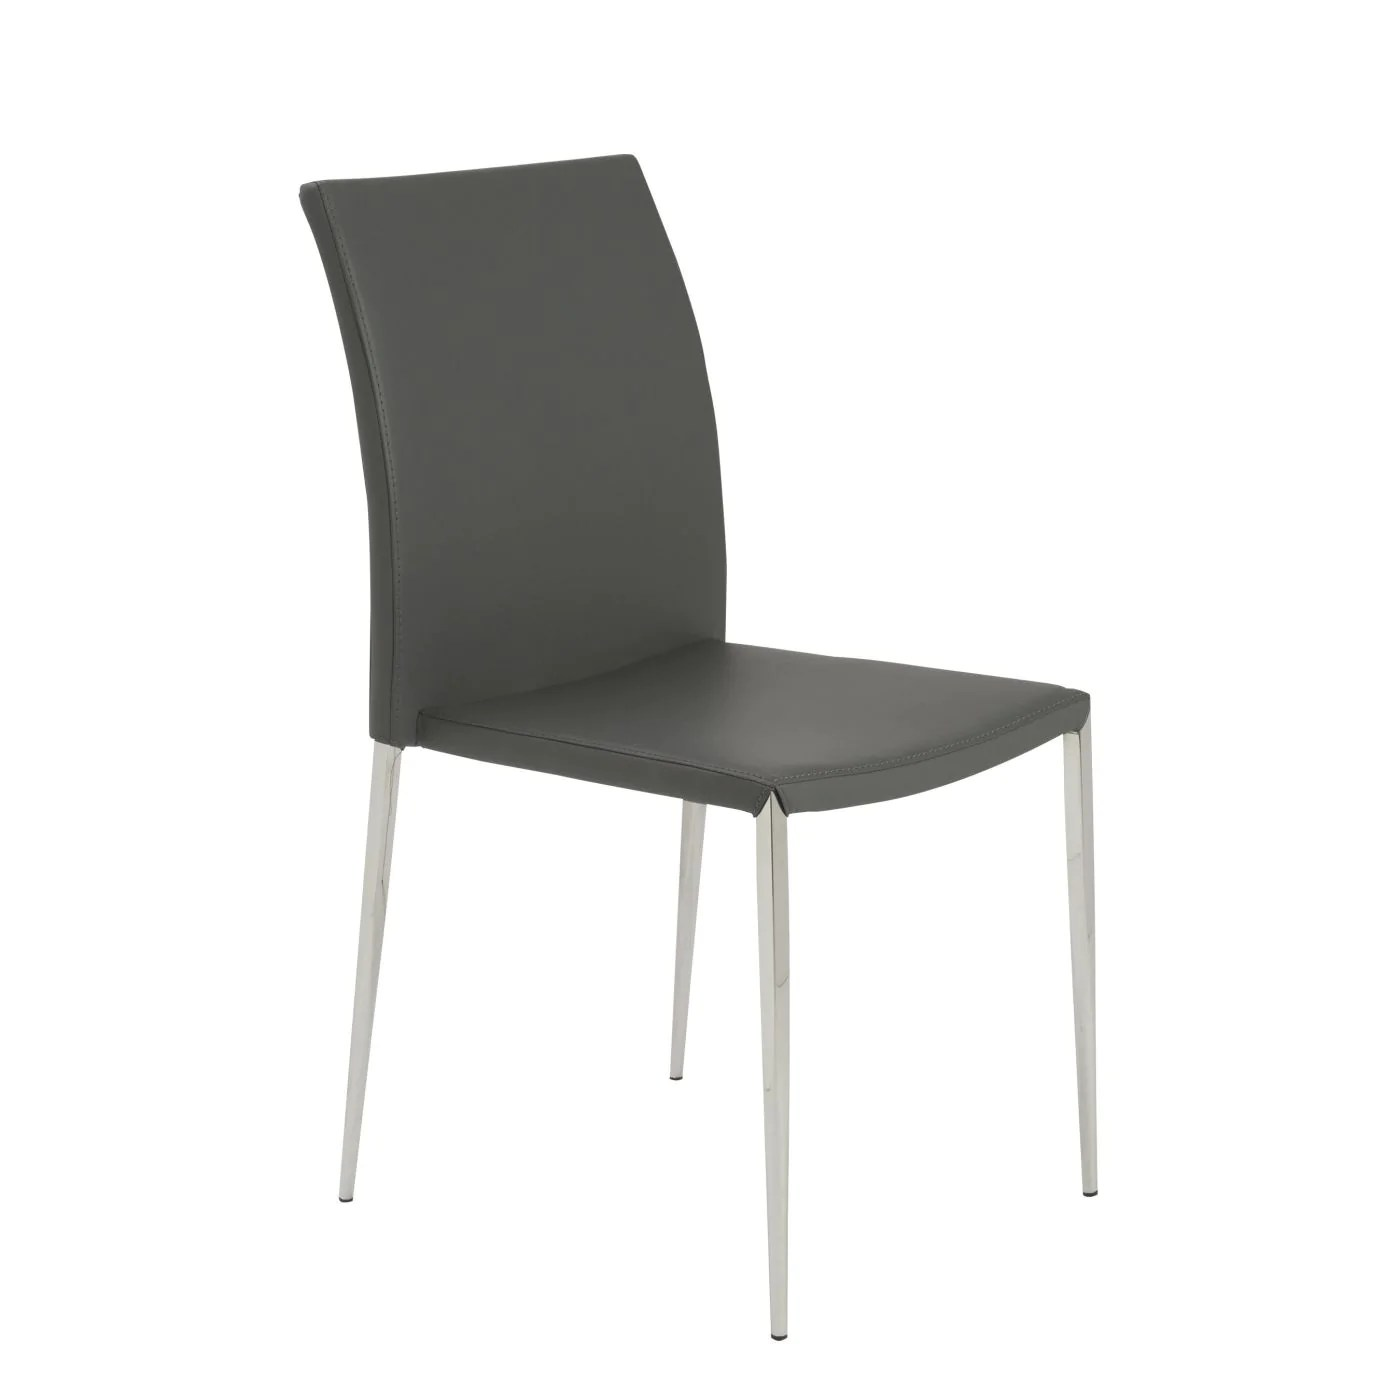 Stacking Dining Chairs Euro Style Diana Stacking Side Chair In Gray With Polished